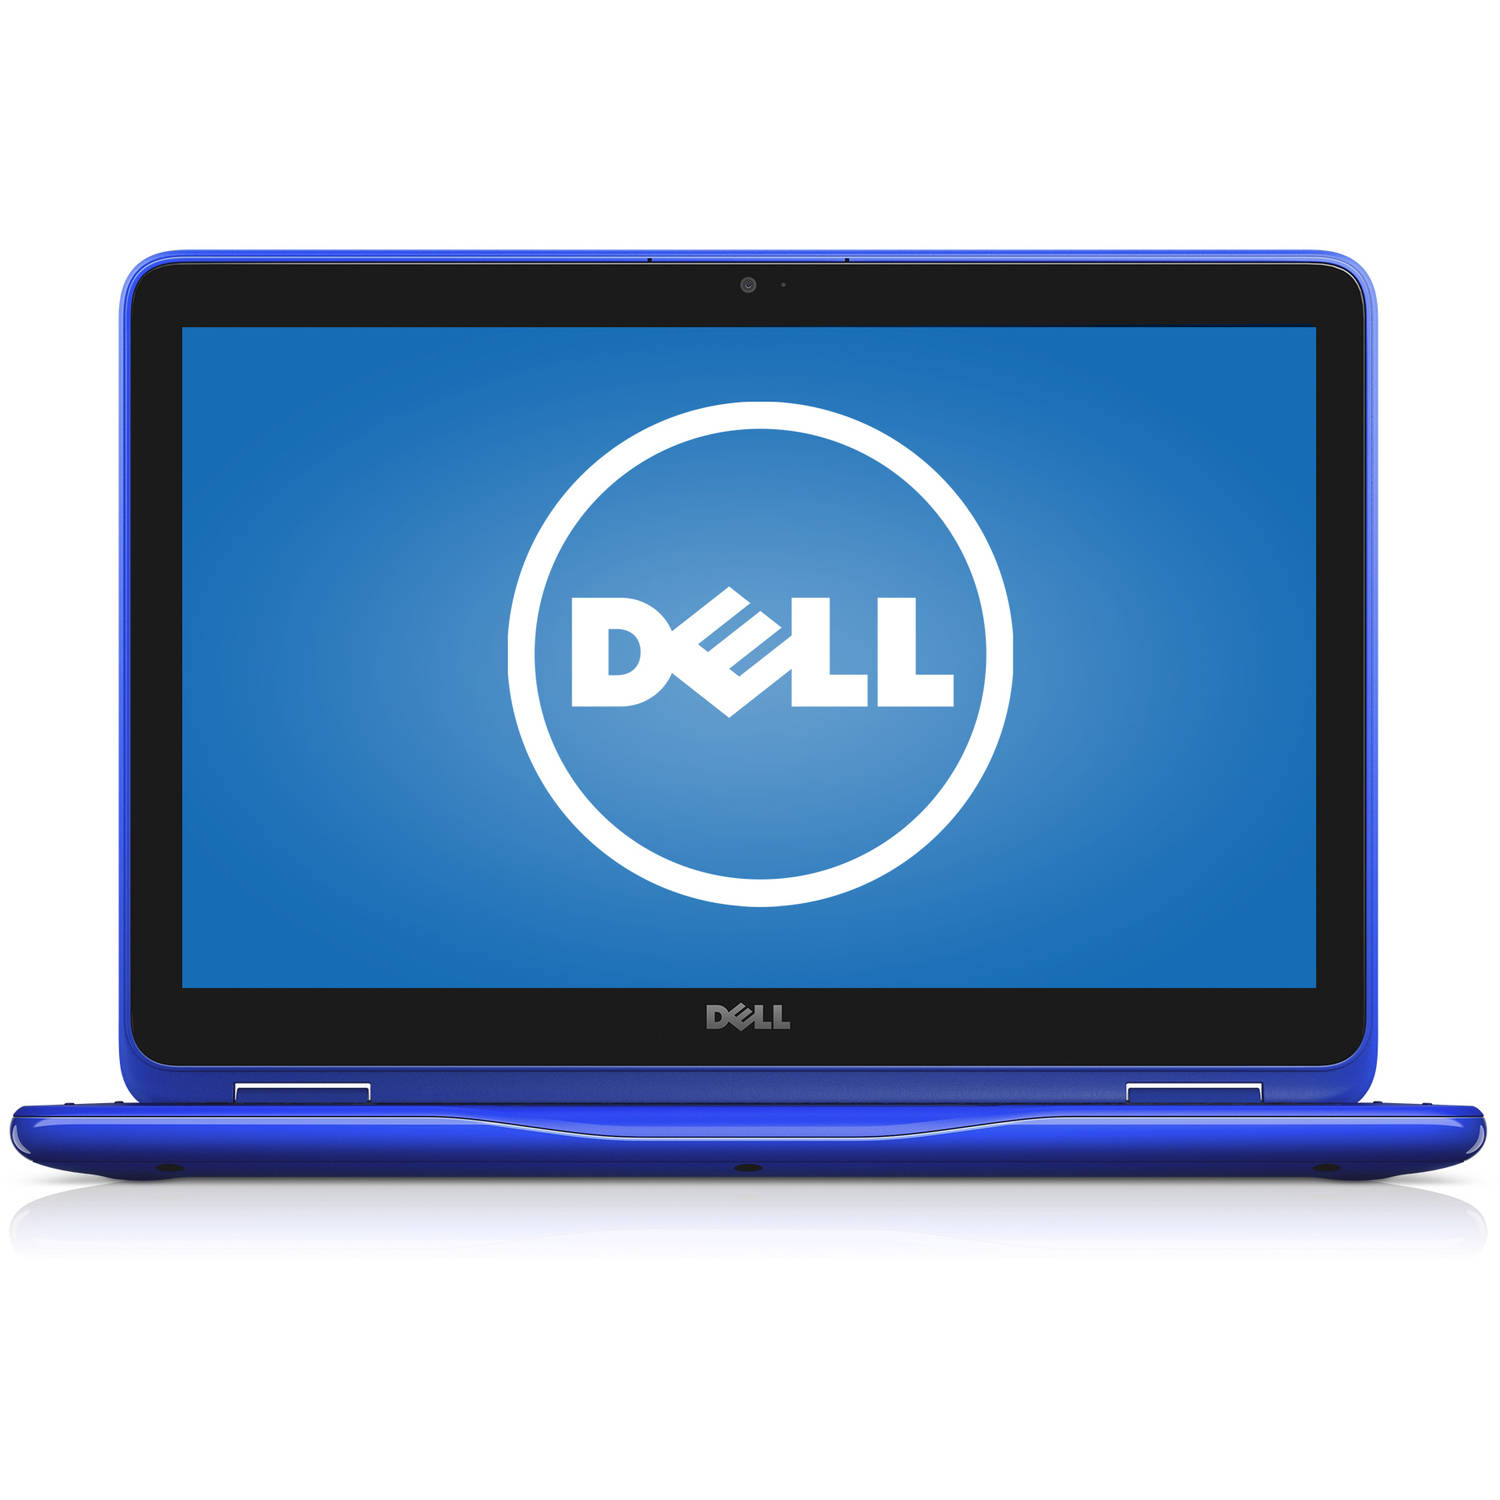 "Dell Bali Blue 11.6"" Inspiron 3000 i3168-3271BLU 2-in-1 Laptop PC with Intel Pentium N3710 Processor, 4GB Memory, Touchscreen, 500GB Hard Drive and Windows 10 Home"